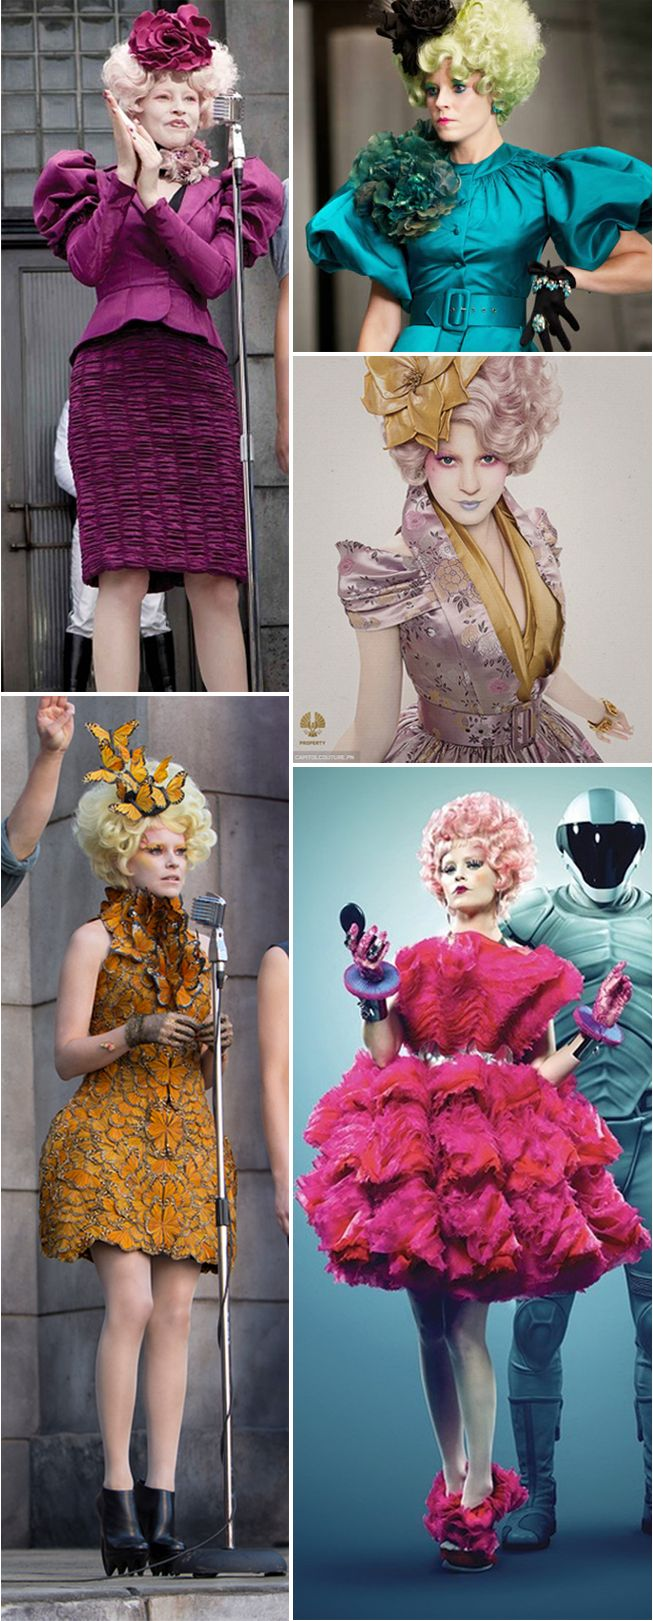 The best of Effie Trinket's outrageously awesome outfits from the Hunger Games and Catching Fire. How fun would it be to dress up in one of these costumes for Halloween?! #CapitolCouture: